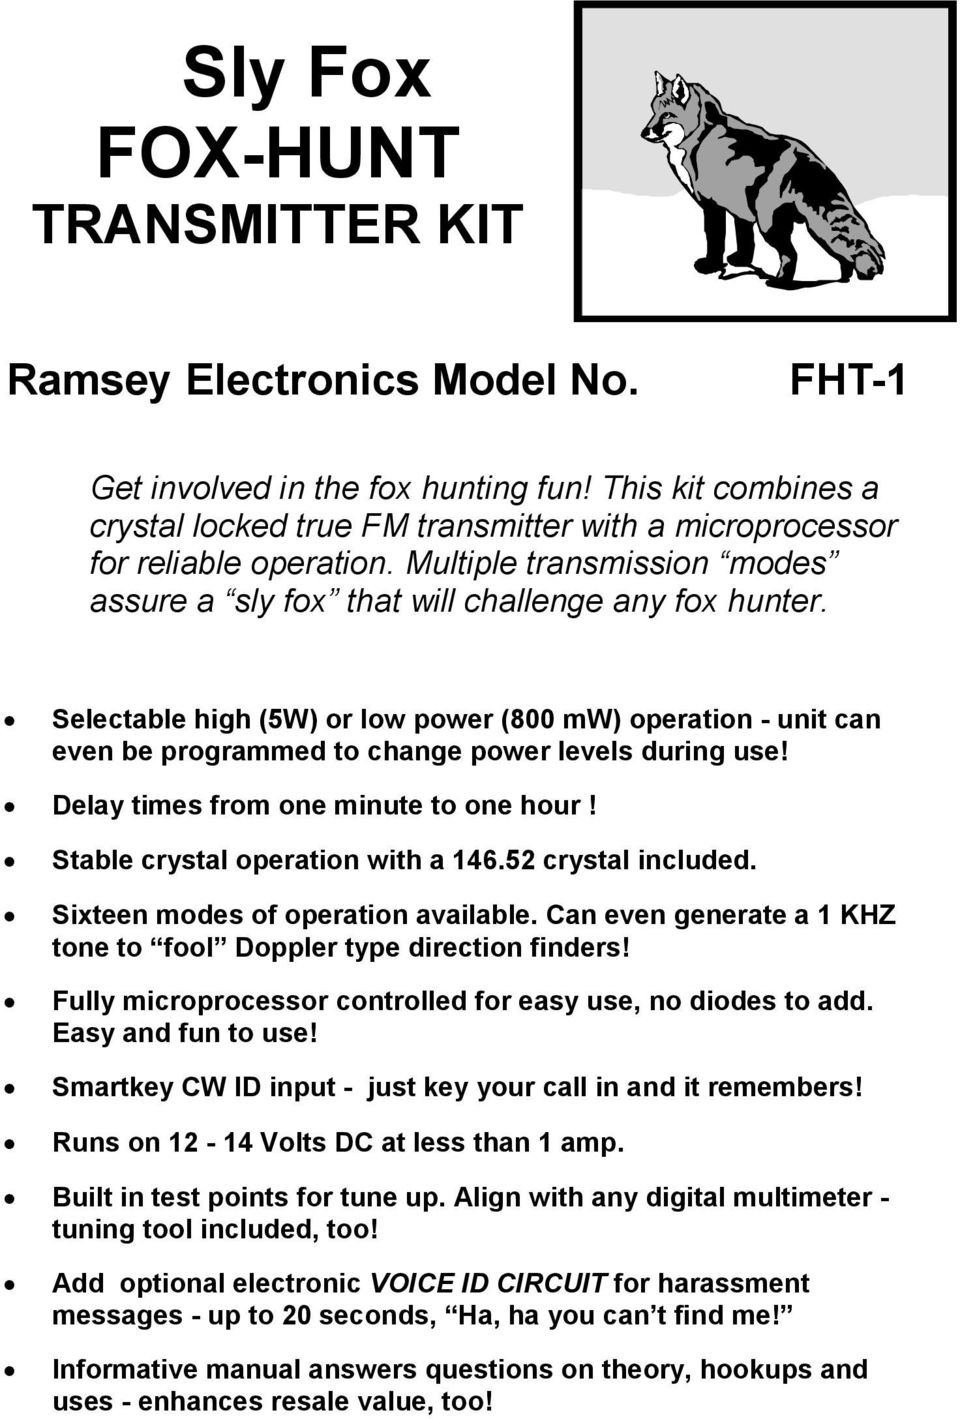 Sly Fox Hunt Transmitter Kit Pdf Low Power Fm Circuit Selectable High 5w Or 800 Mw Operation Unit Can